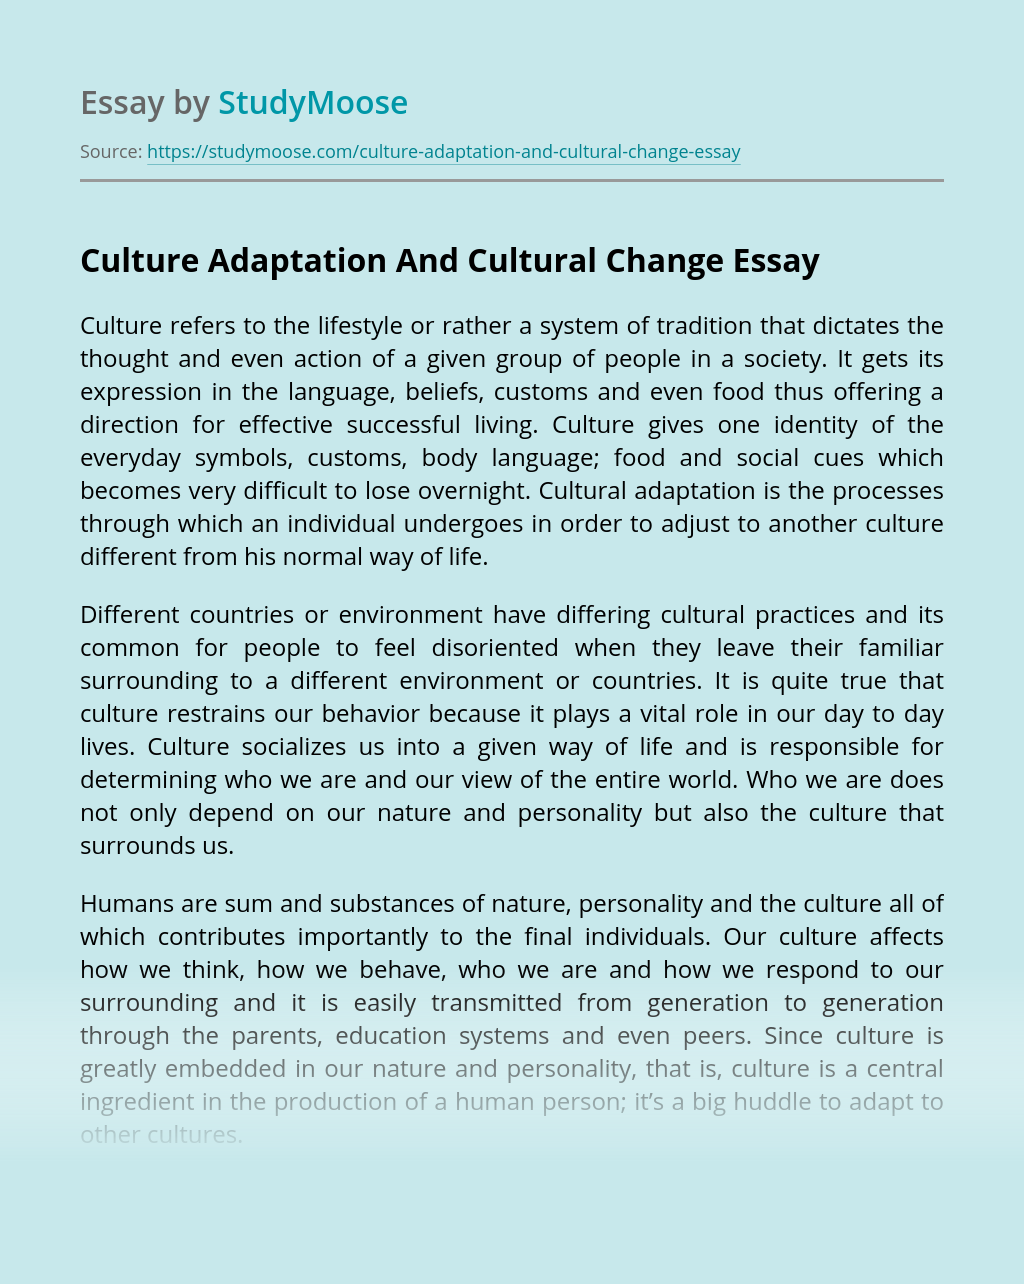 Culture Adaptation And Cultural Change